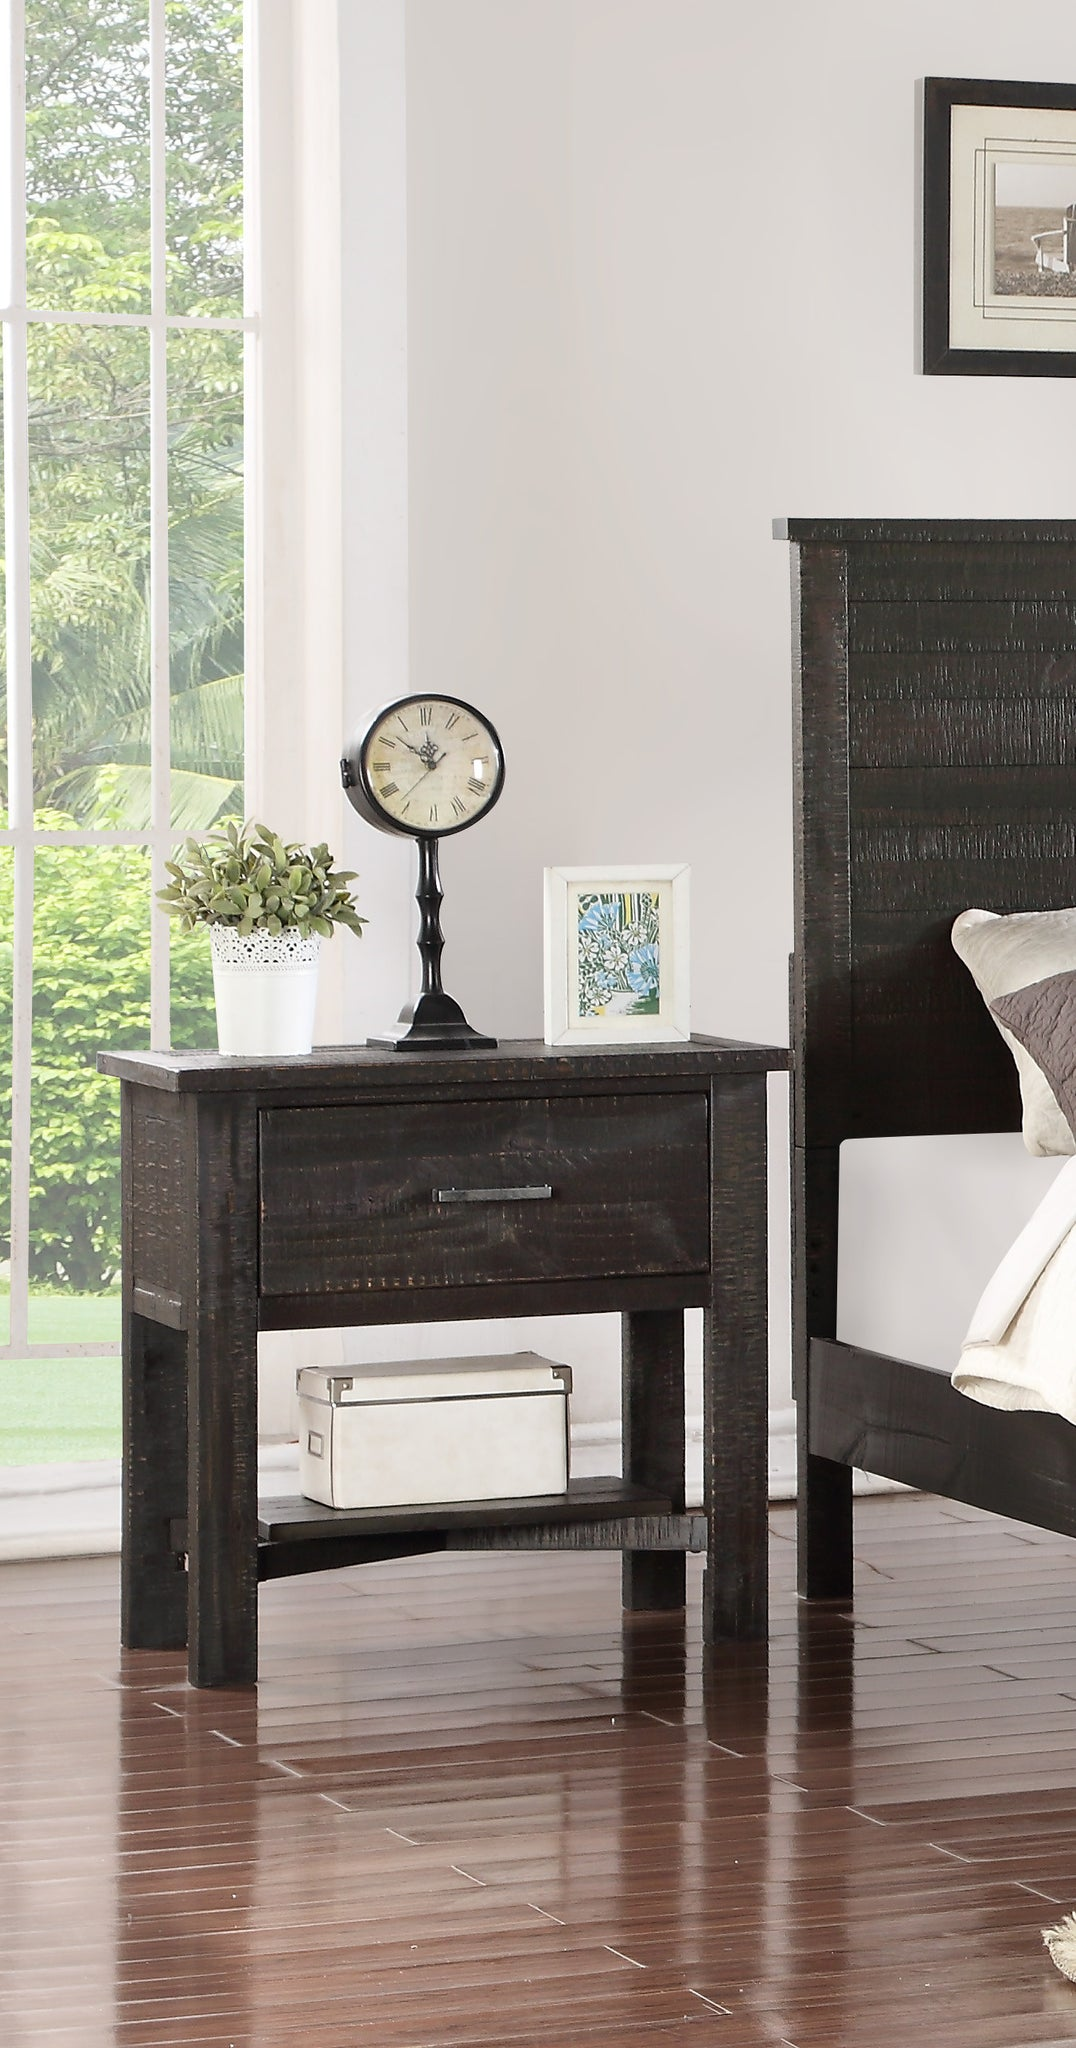 Madison Charcoal Or Natural Wood Rustic Kids Bedroom Nightstand